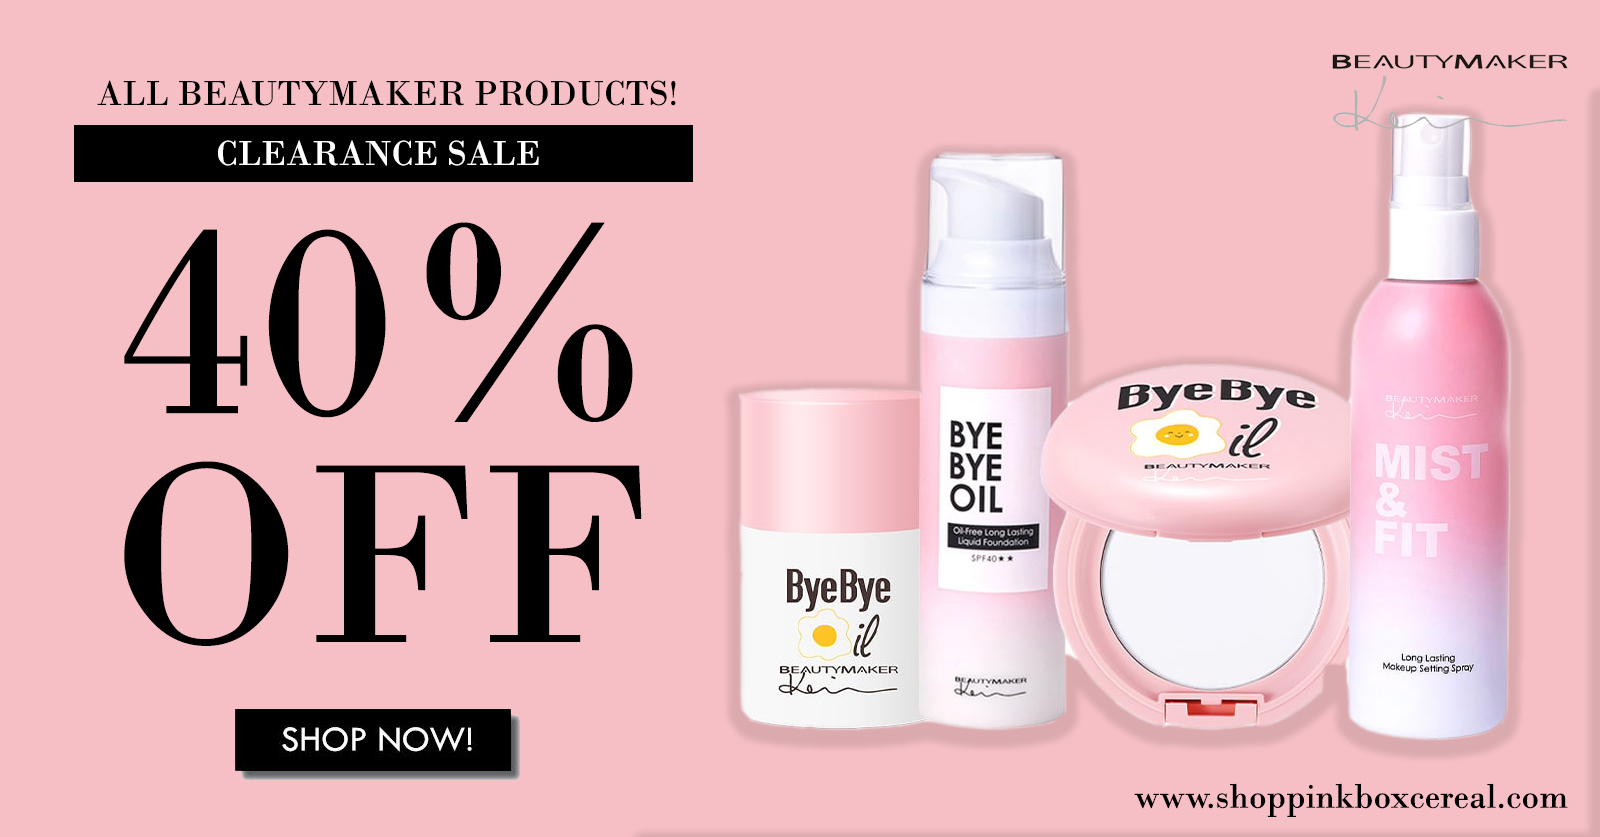 beautymaker sale banner copy.jpg